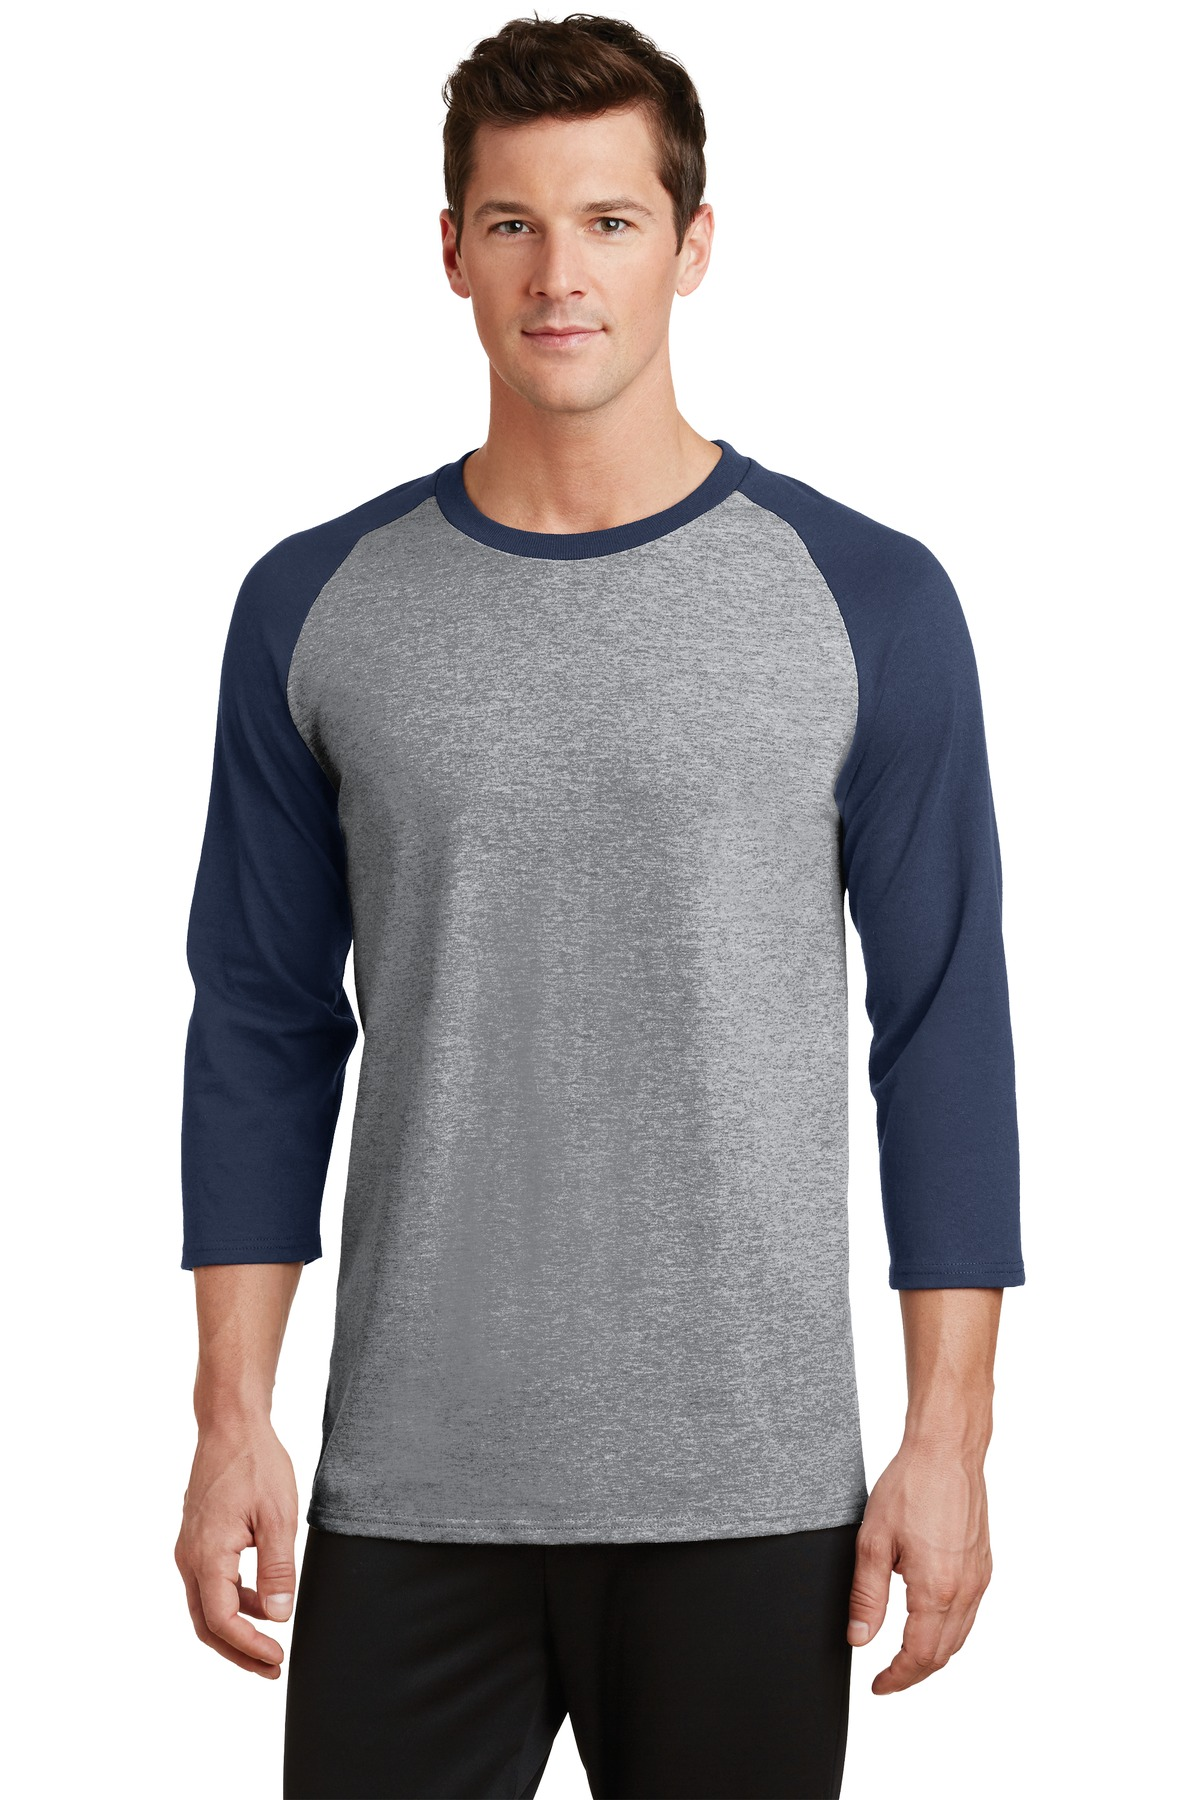 Shop for men baseball tees online at Target. Free shipping on purchases over $35 and save 5% every day with your Target REDcard.